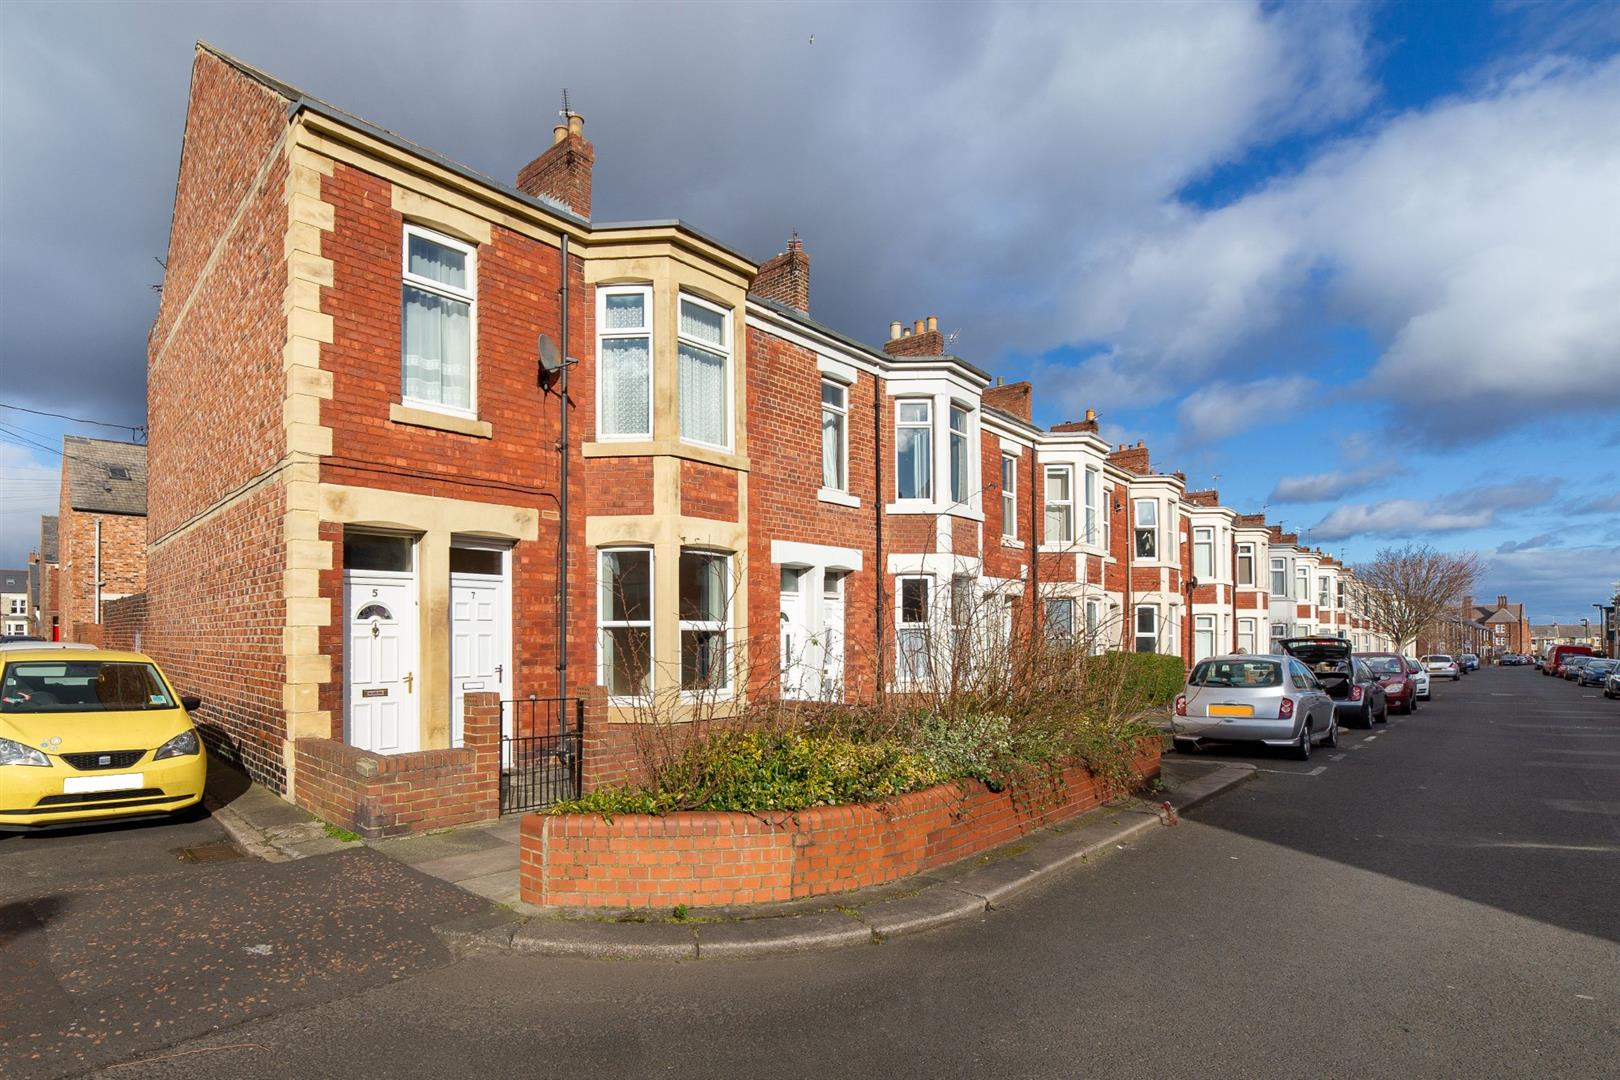 3 bed flat for sale in Heaton, NE6 5XY  - Property Image 1